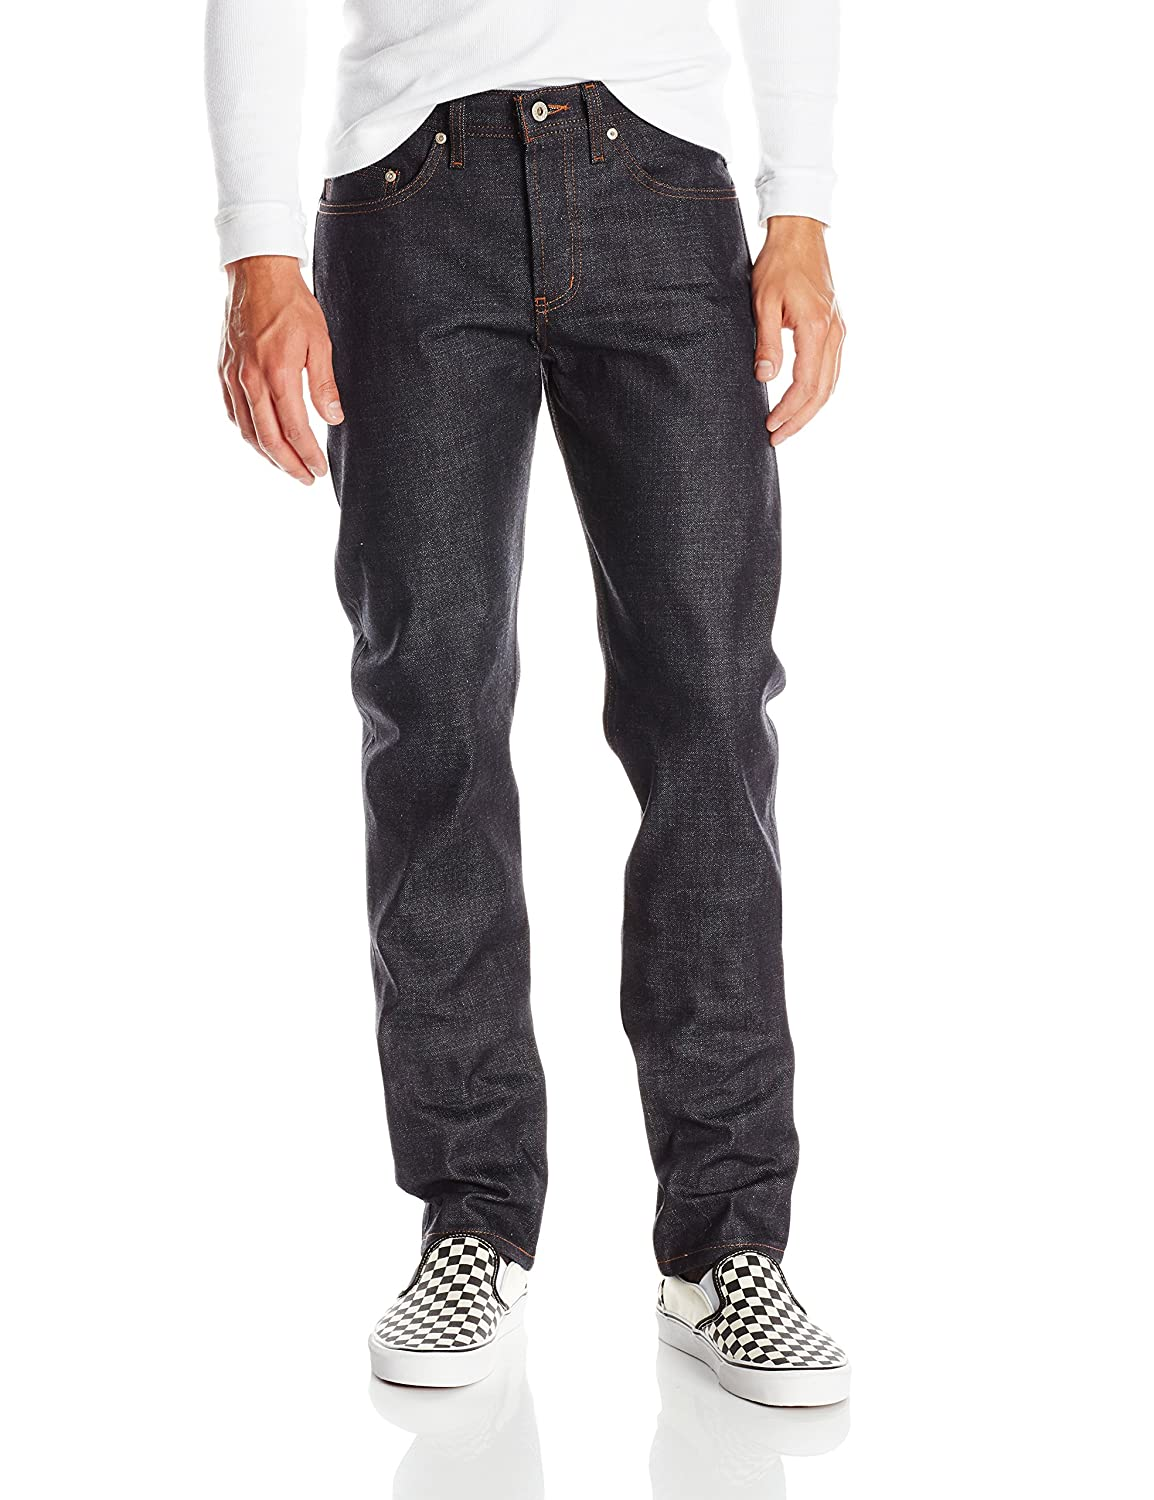 Naked & Famous Denim Men's Weird Guy Deep Indigo Rigid Selvedge Jean Naked & Famous Denim Mens 015553